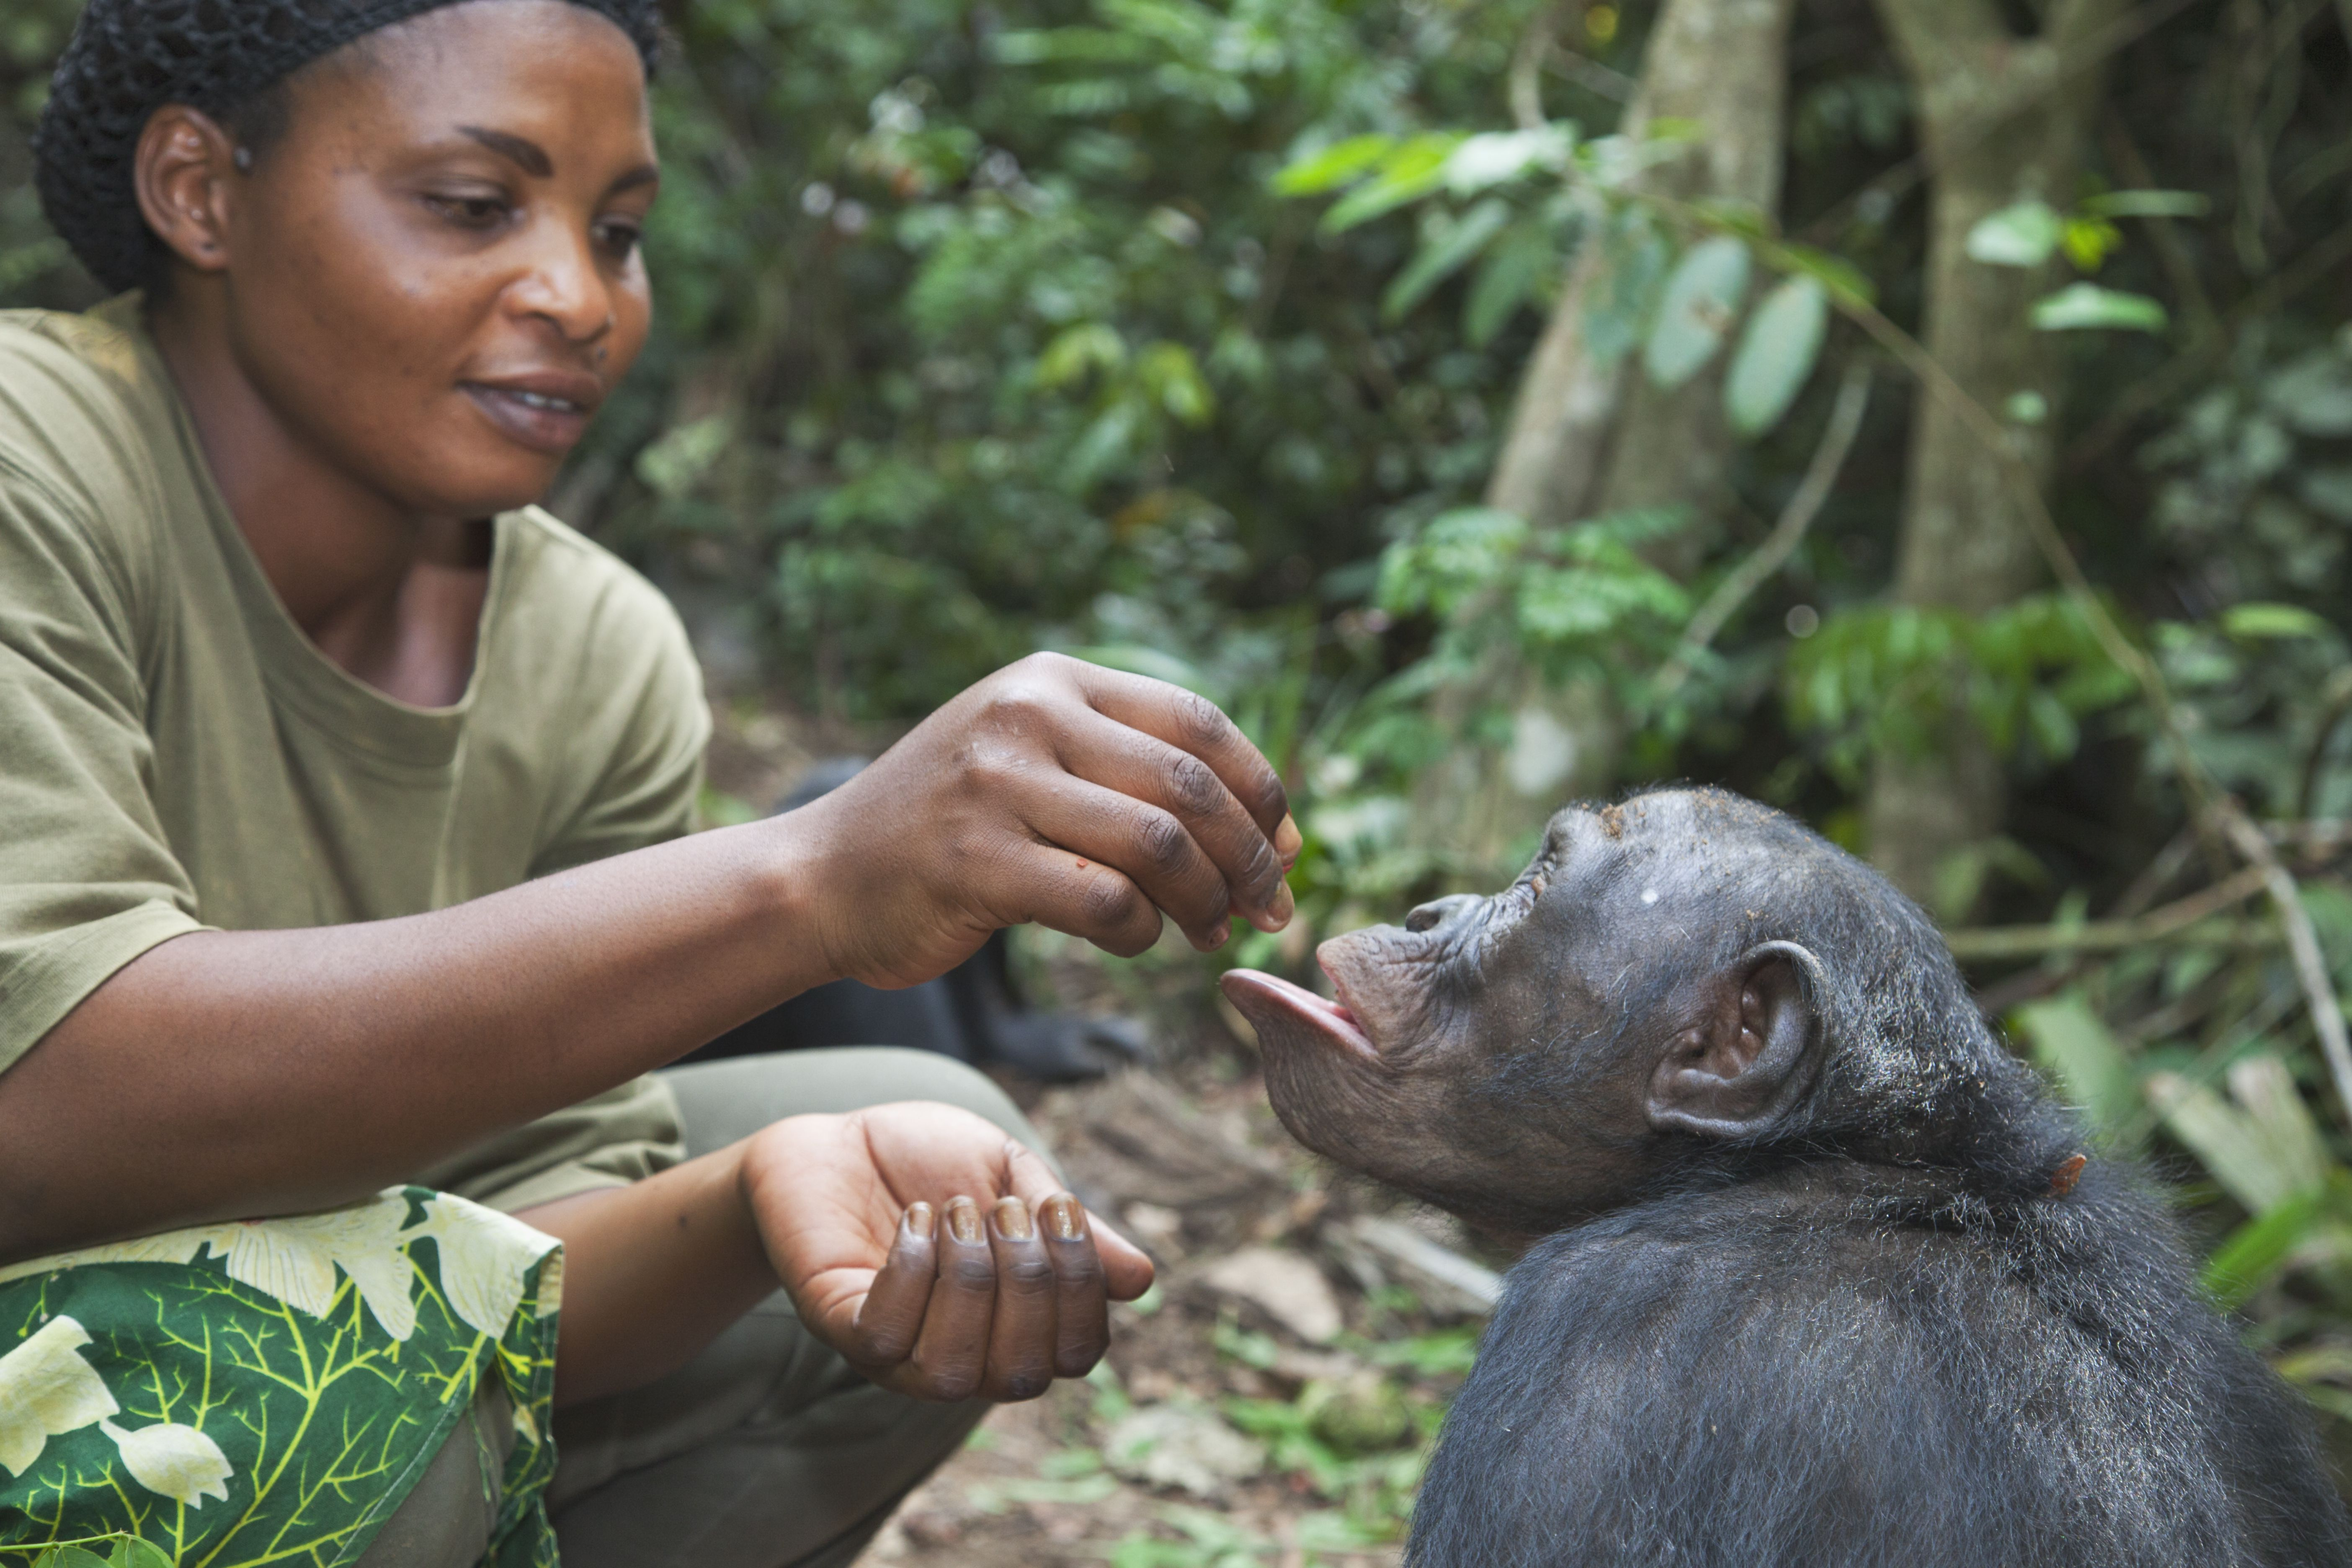 Careers With Animals: Become A Zoologist